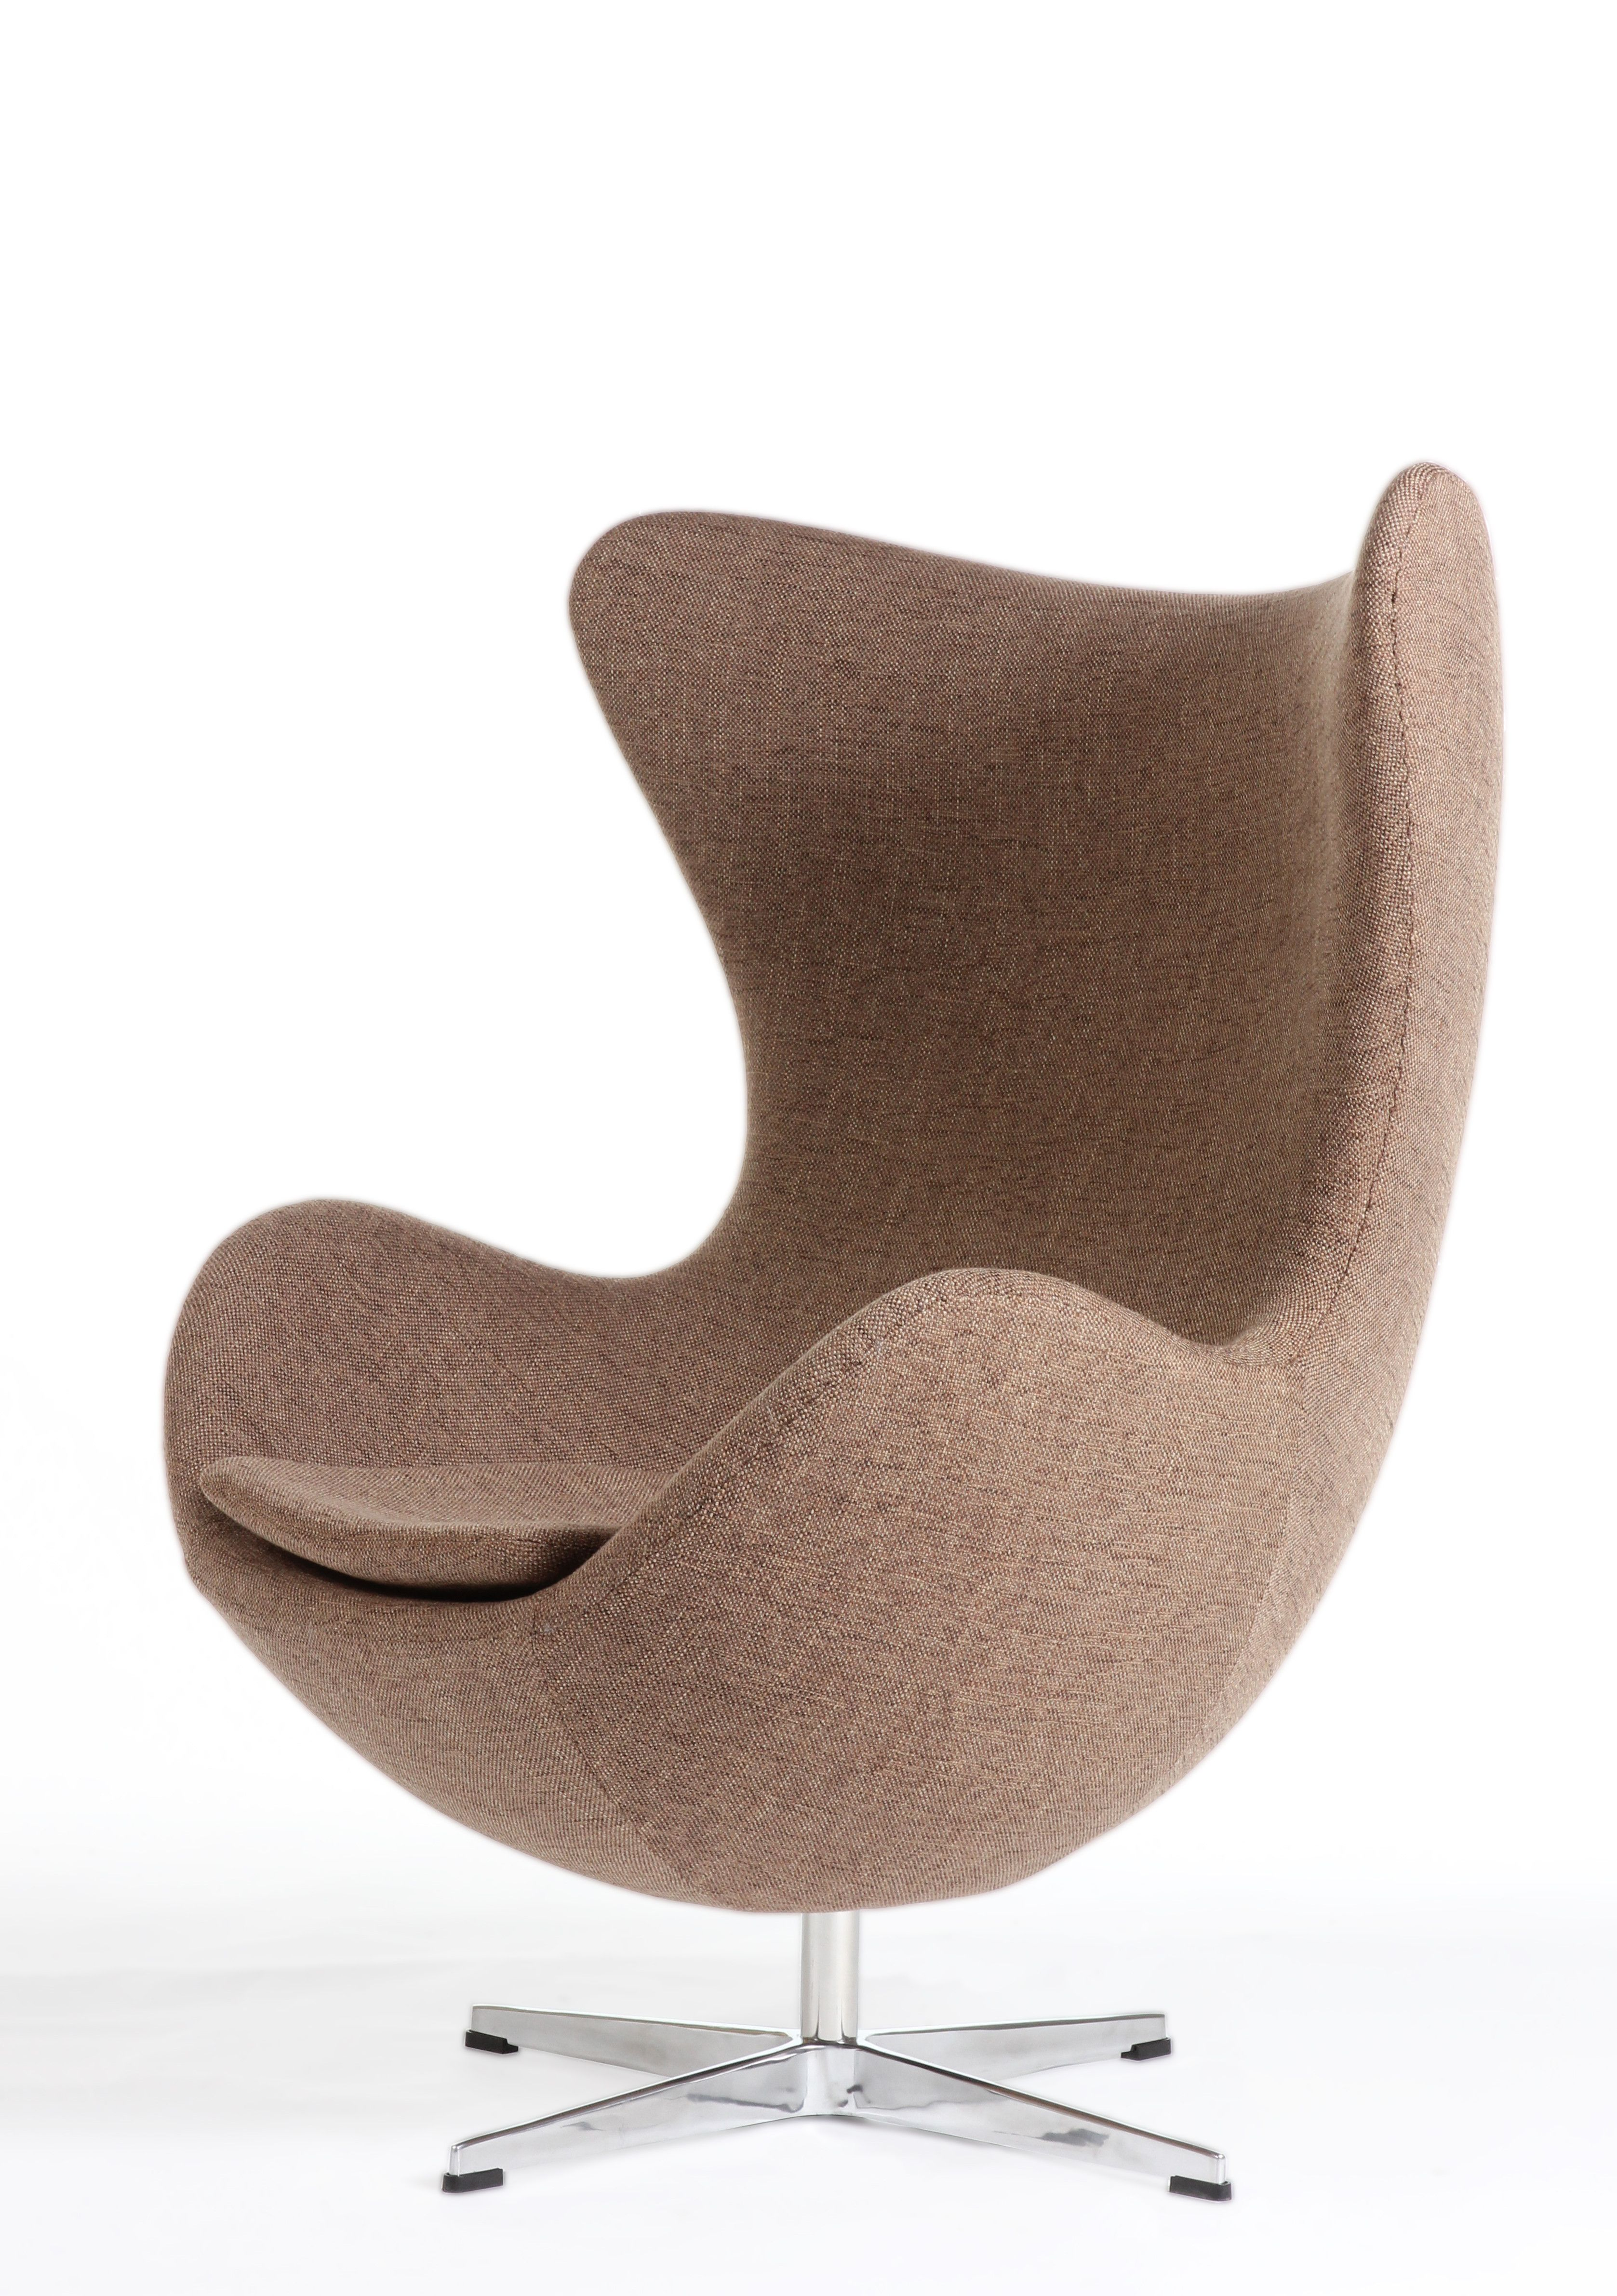 Mid Century Modern Reproduction Egg Chair Brown Inspired By Arne